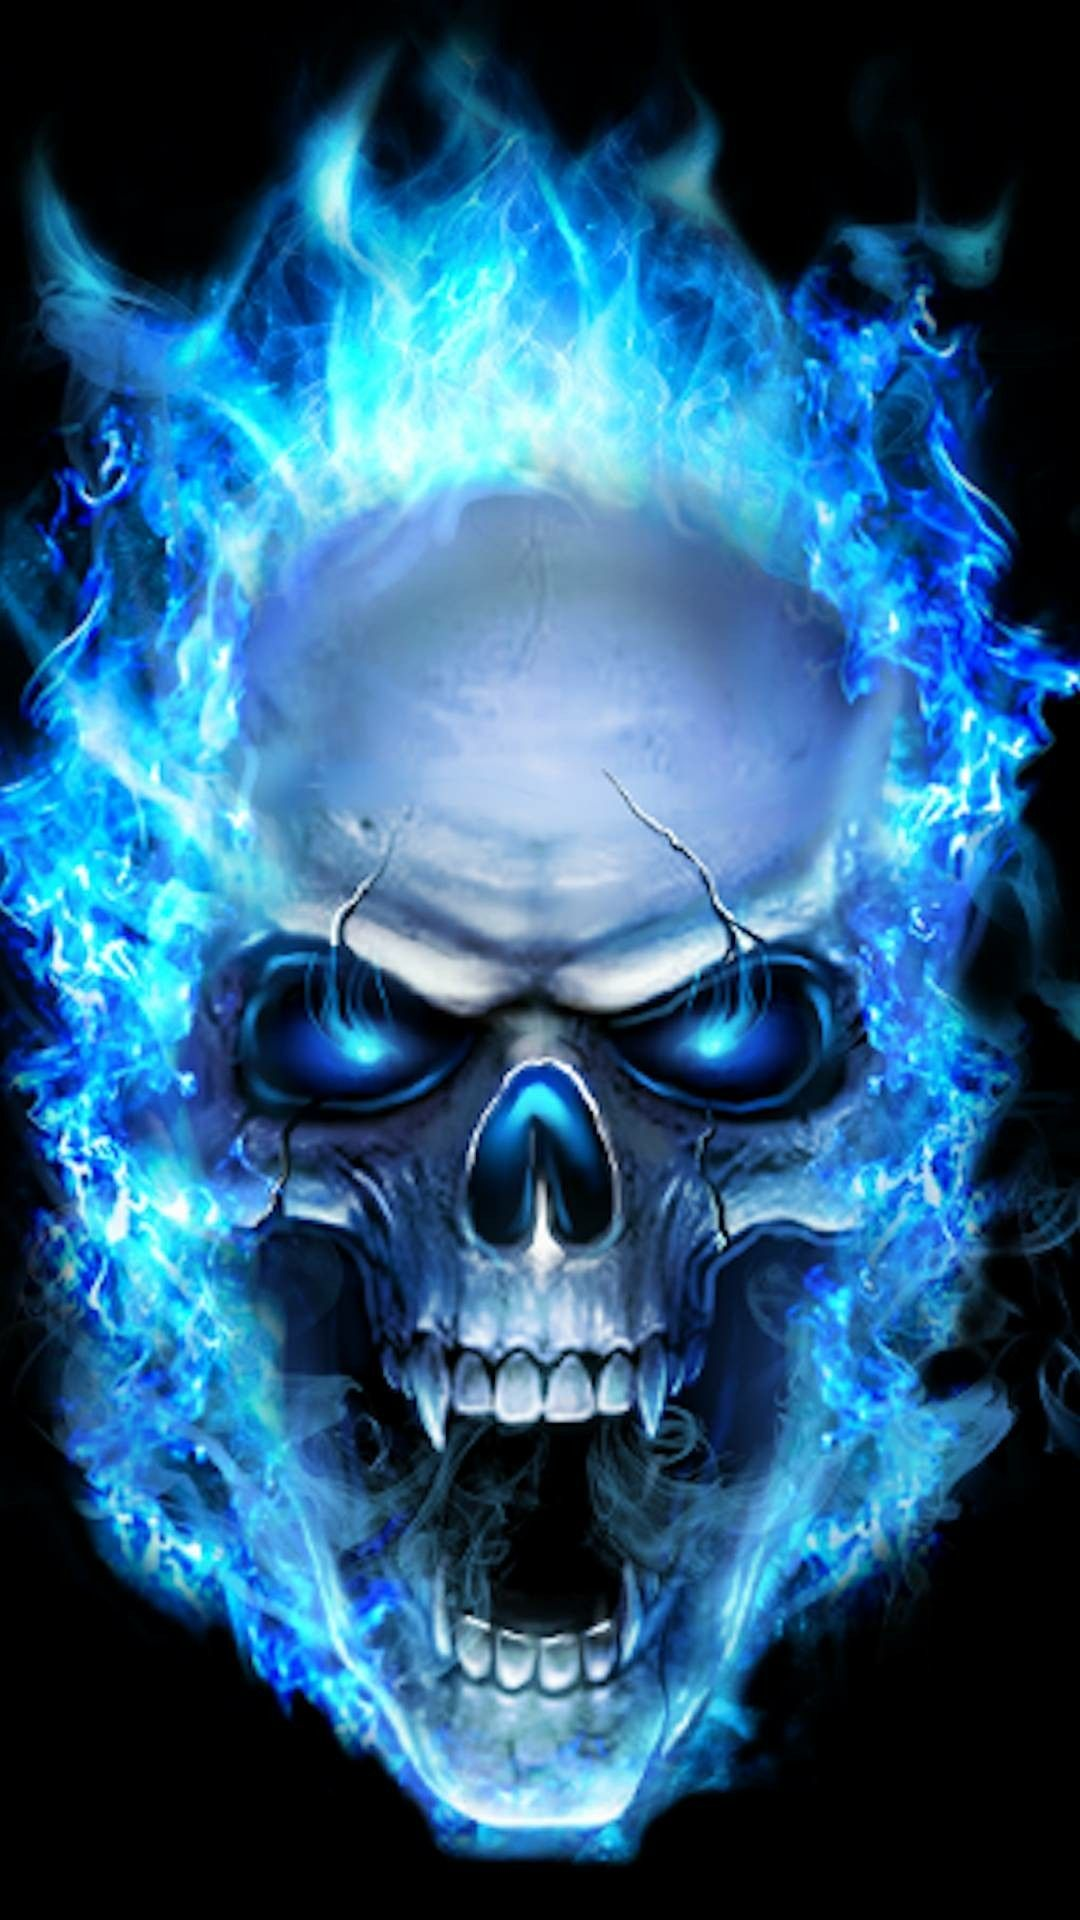 3d Skull Iphone Wallpapers Top Free 3d Skull Iphone Backgrounds Wallpaperaccess